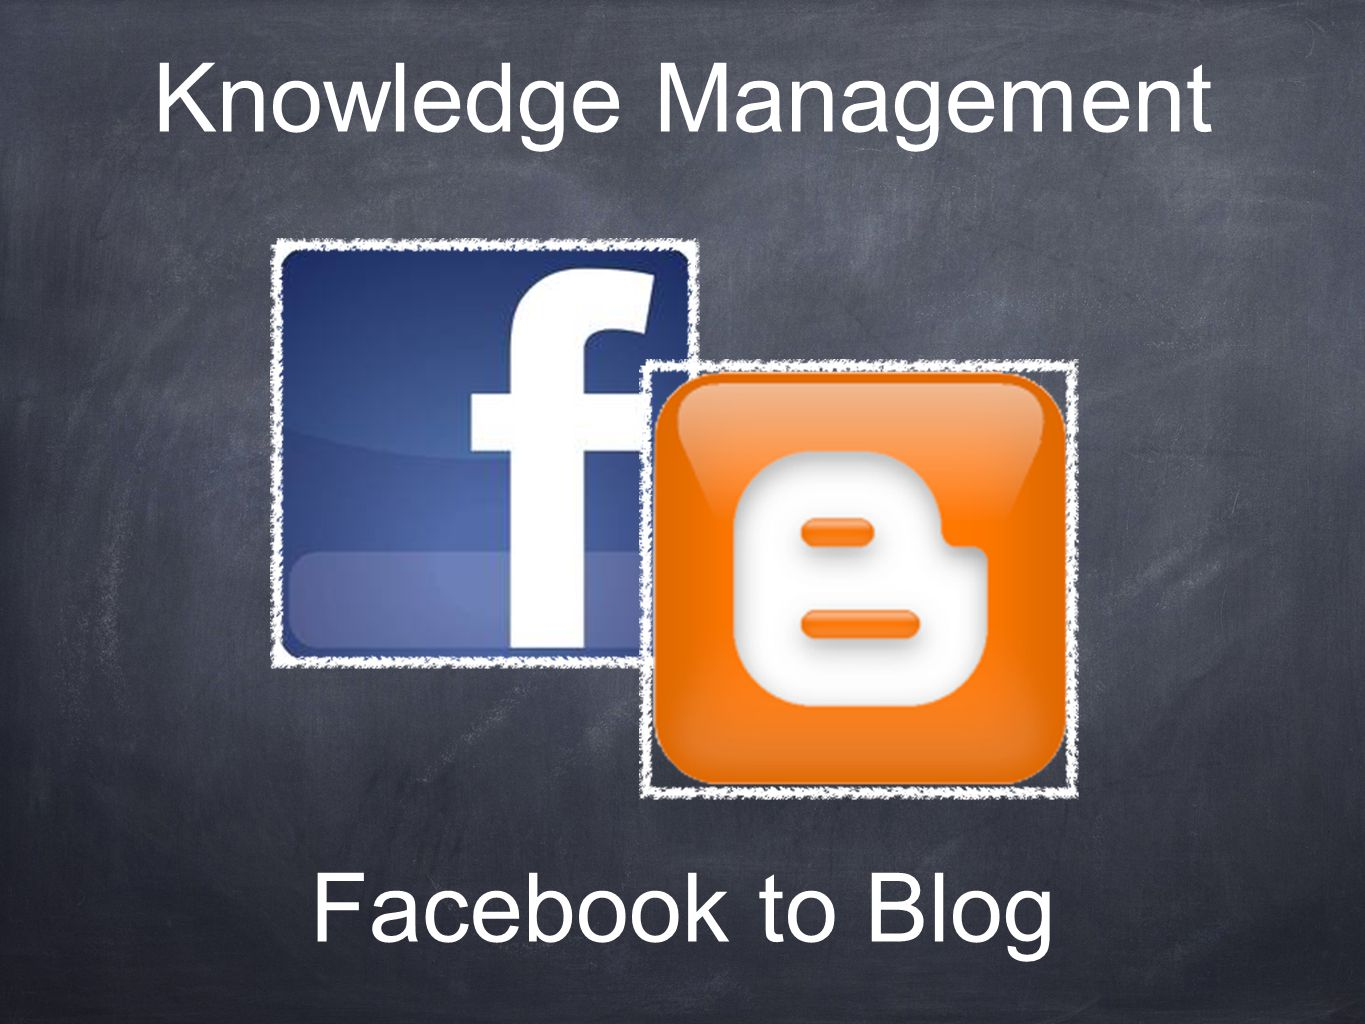 Facebook to Blog Knowledge Management